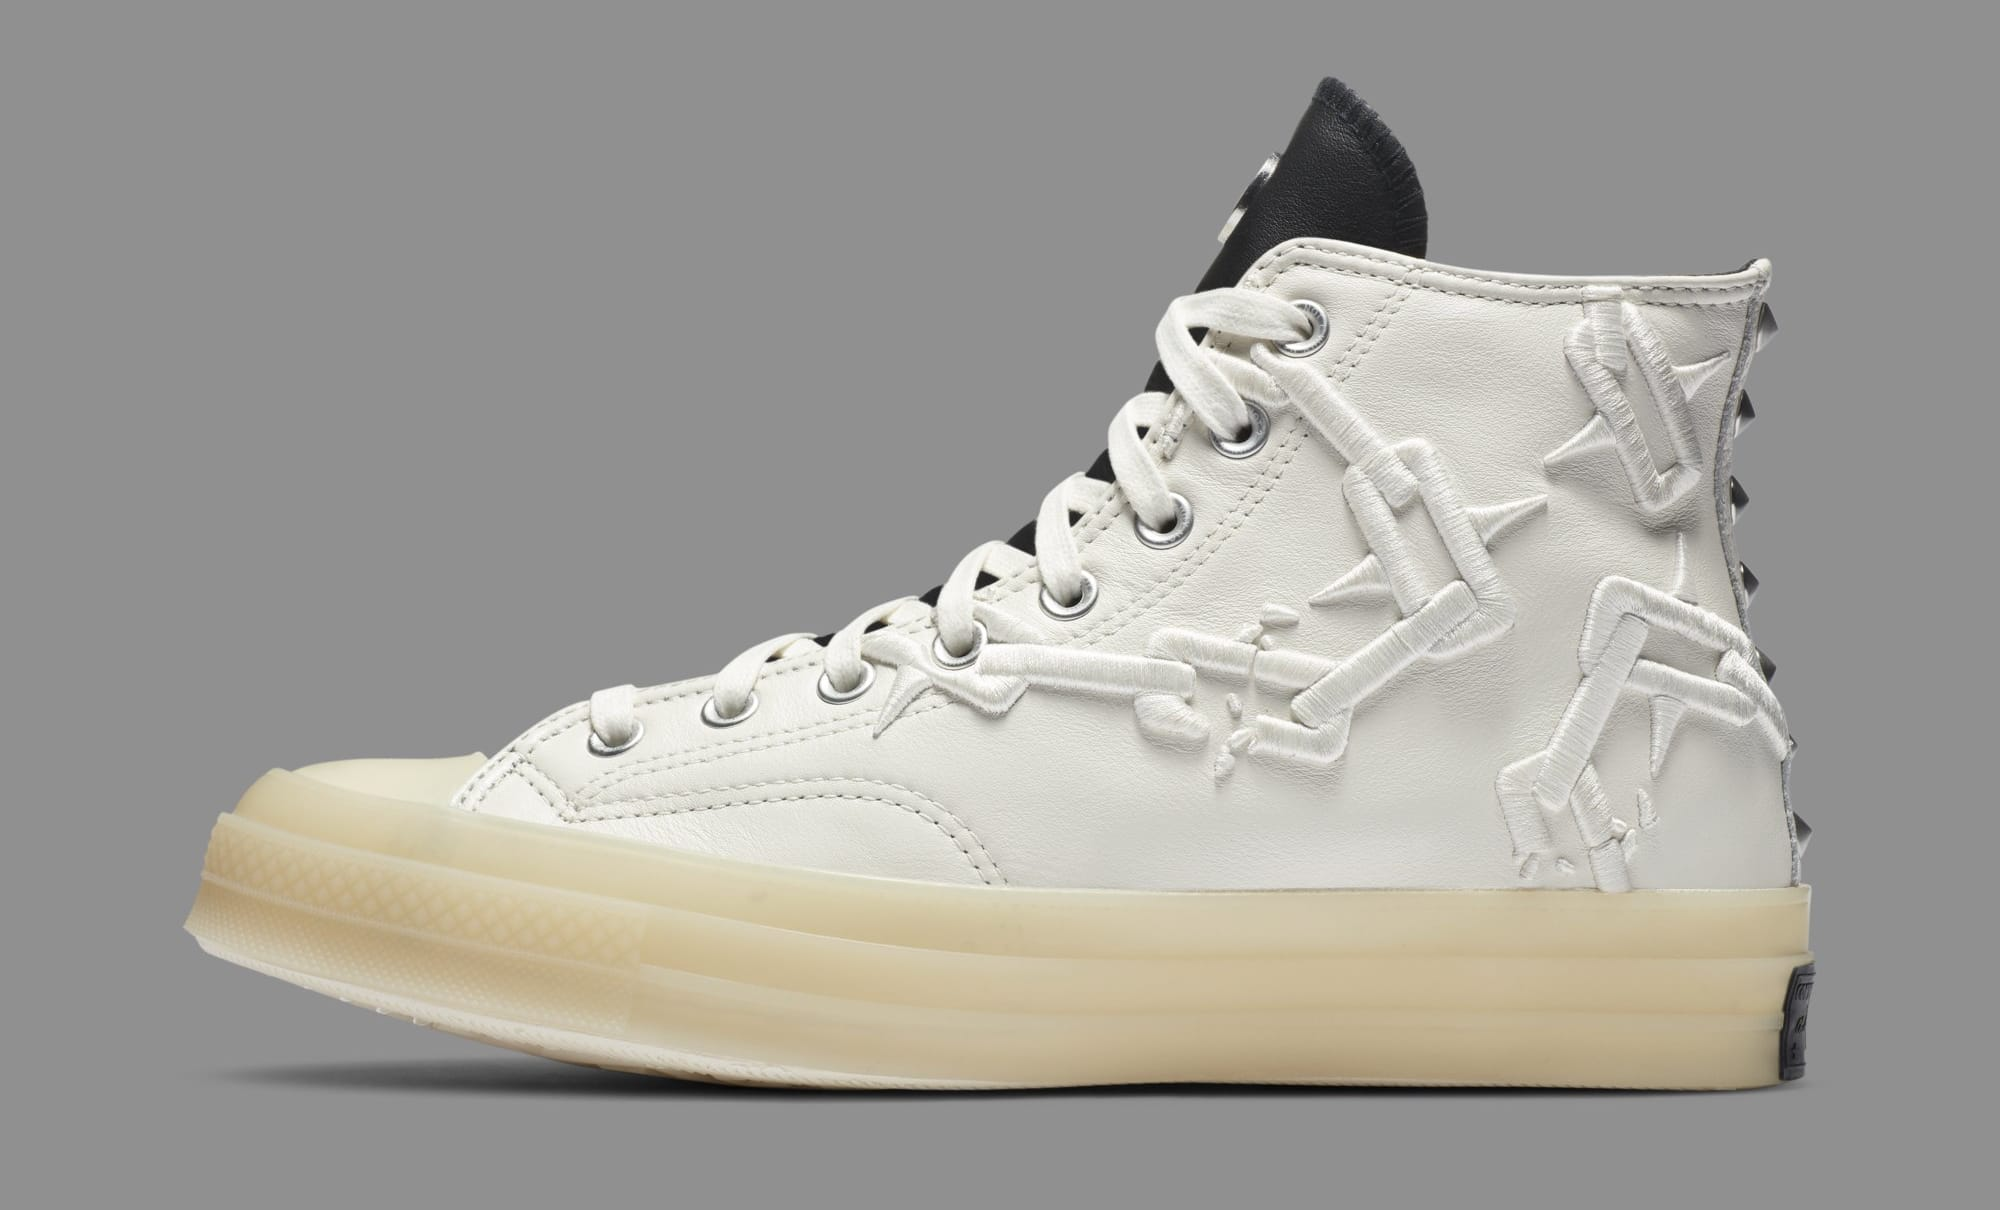 Russell Westbrook Converse Chuck 70 'Why Not?' DA1323-900 Lateral